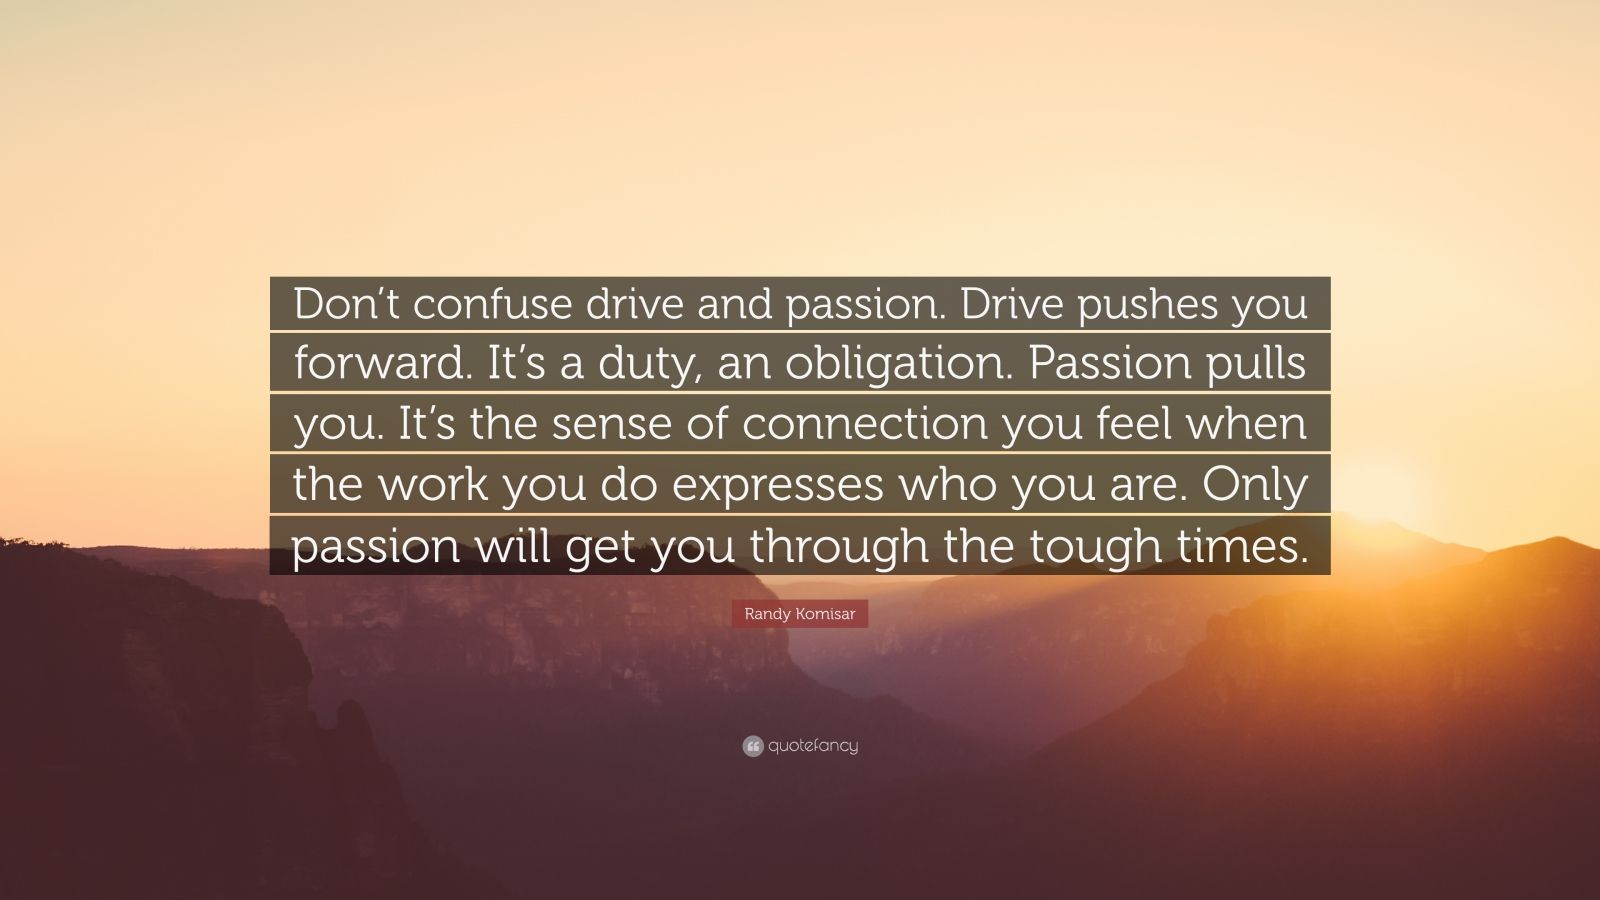 """Randy Komisar Quote: """"Don't confuse drive and passion. Drive pushes you forward. It's a duty, an obligation. Passion pulls you. It's the sense of connection you feel when the work you do expresses who you are. Only passion will get you through the tough times."""""""